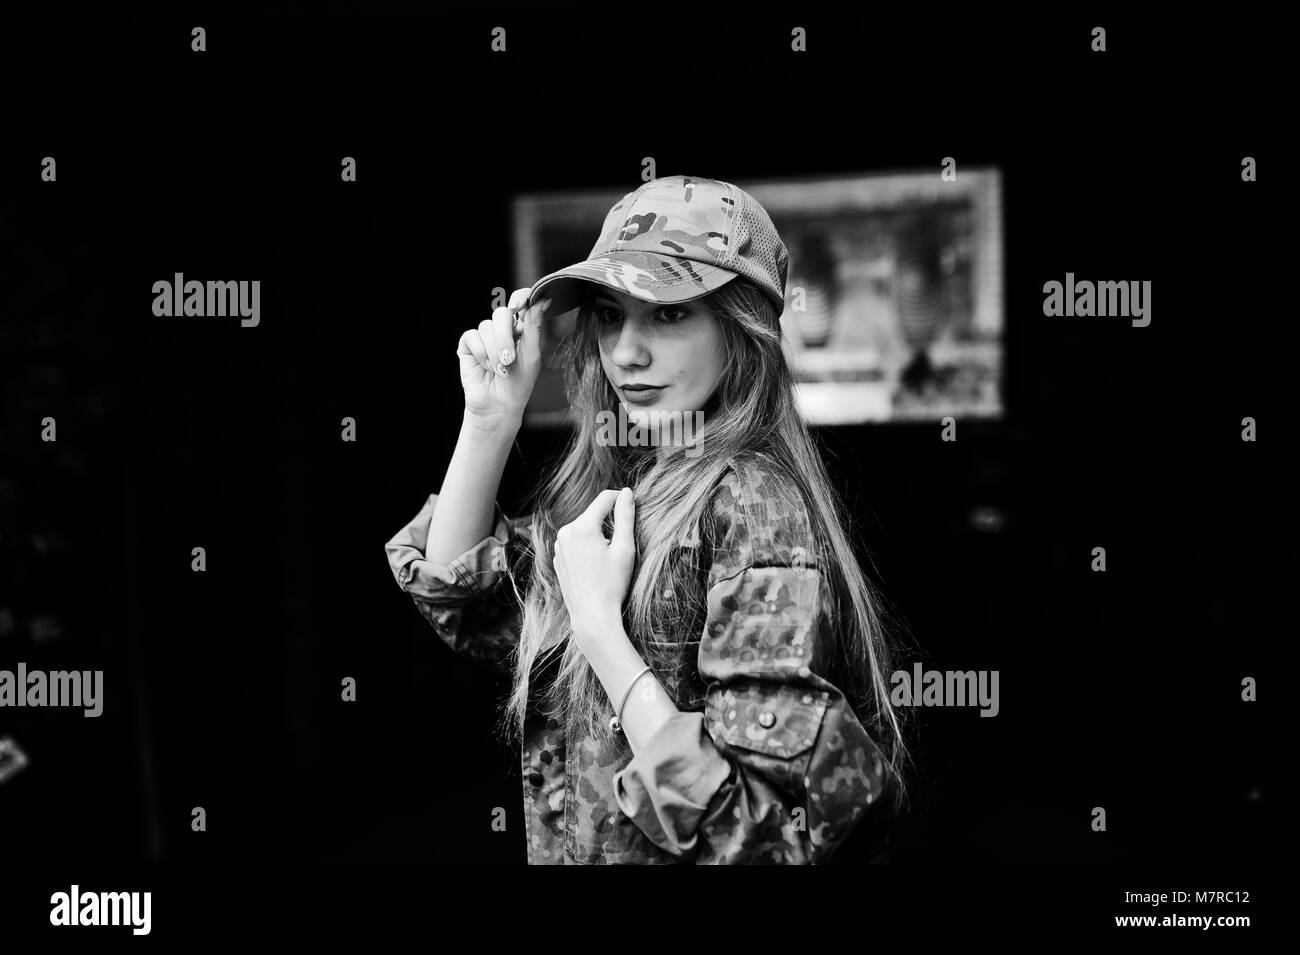 Military girl in camouflage uniform against army background on shooting range. - Stock Image